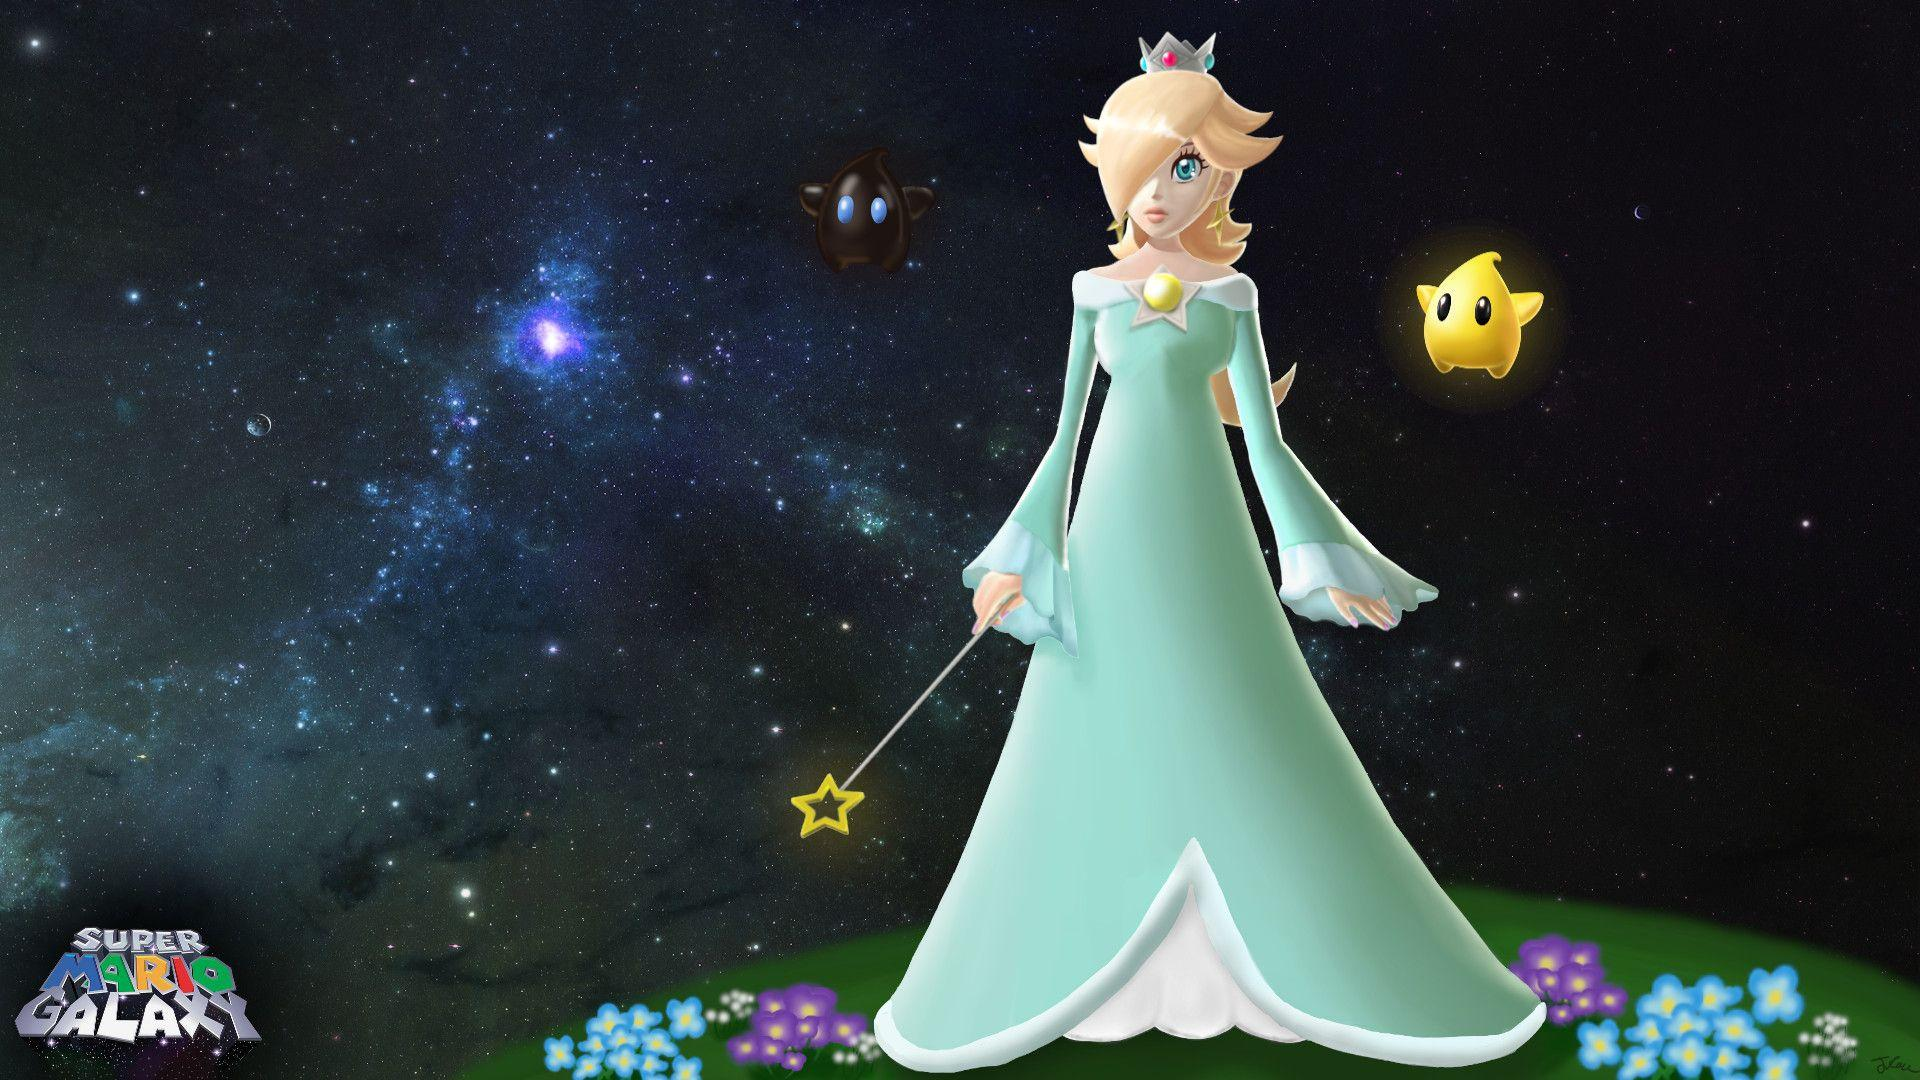 Super Mario Galaxy Rosalina Wallpapers Wallpaper Cave